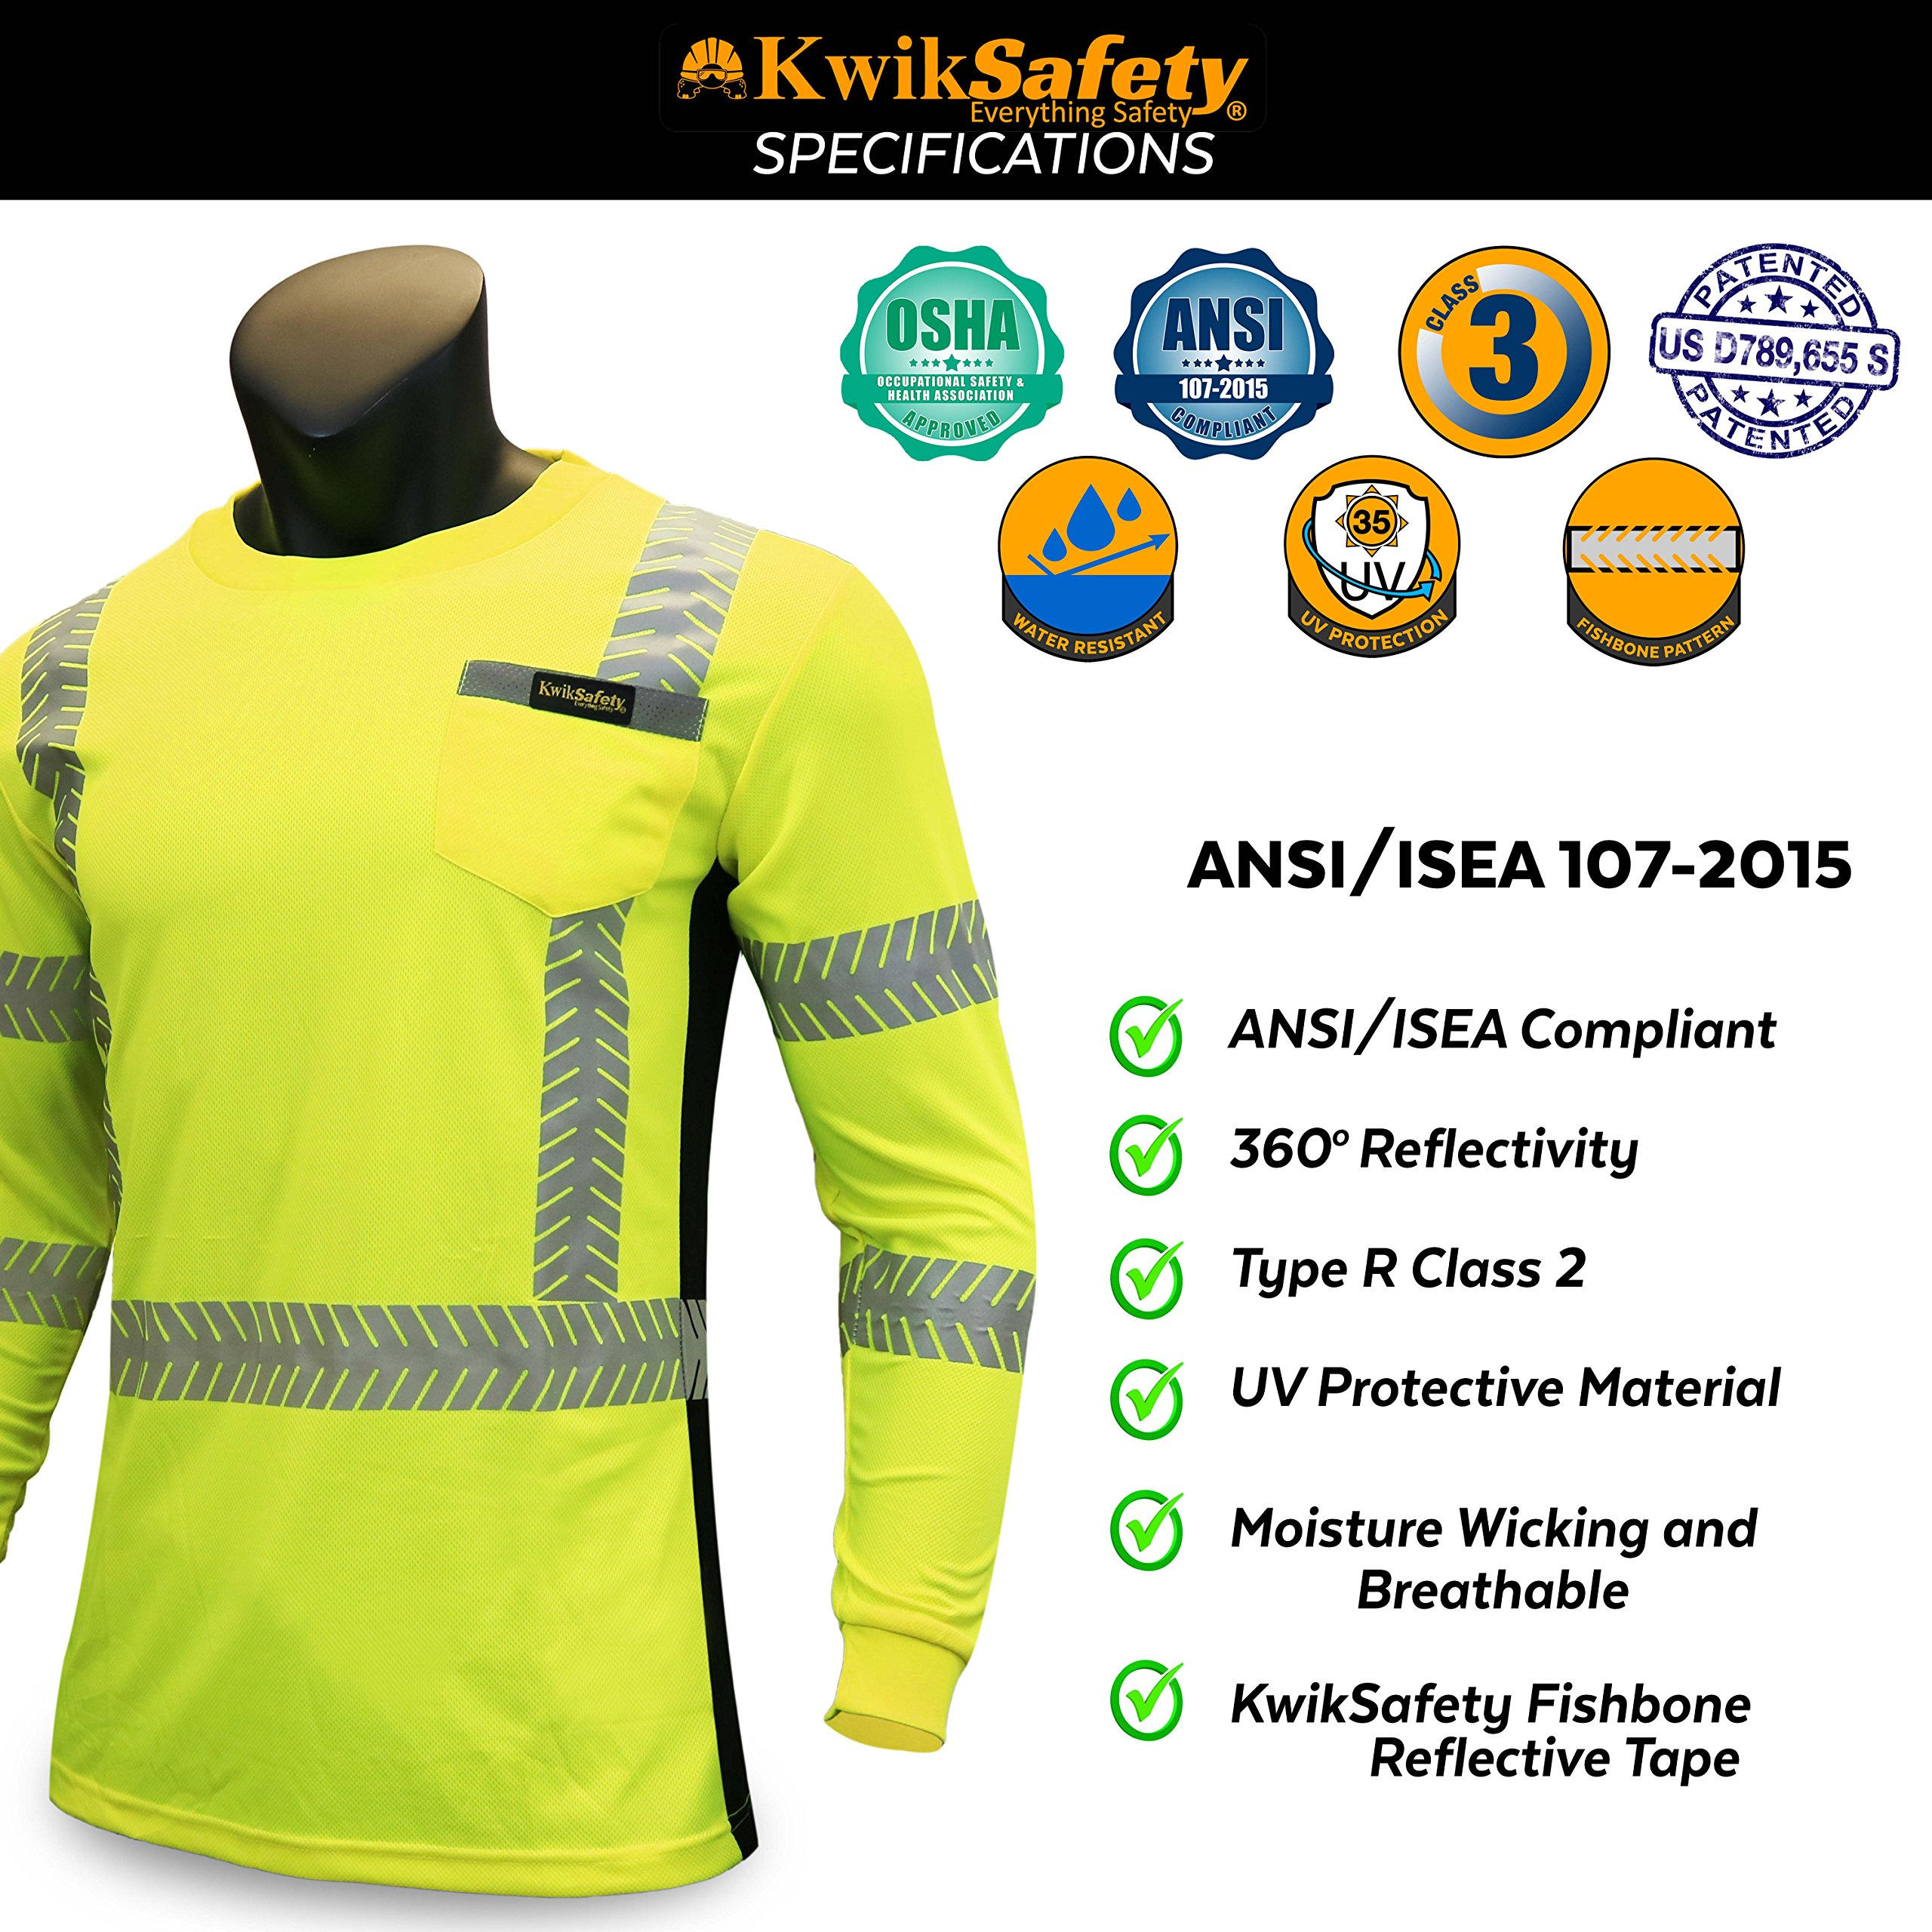 KwikSafety (Charlotte, NC) RENAISSANCE MAN (with POCKET) Class 3 ANSI High Visibility Safety Shirt Fishbone Reflective Tape Construction Security Hi Vis Clothing Men Long Sleeve Yellow Black XL by KwikSafety (Image #6)